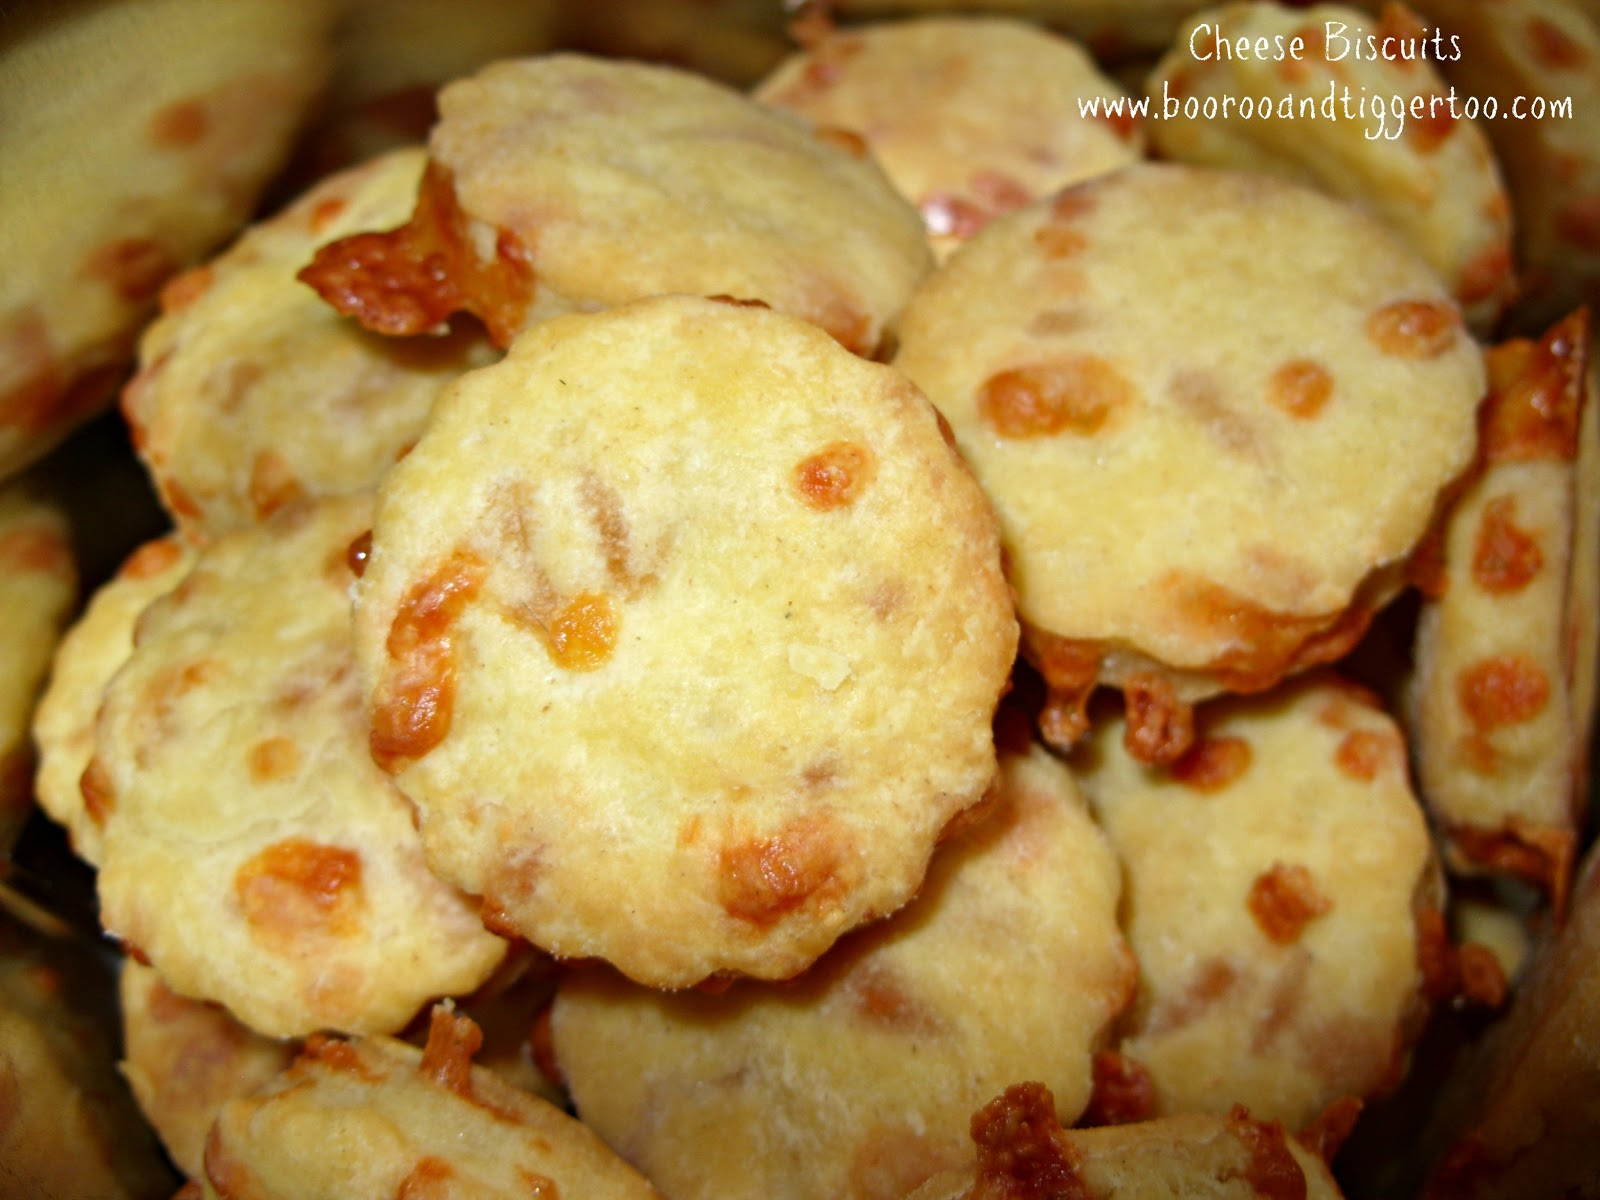 Cheese Biscuits Recipe - Boo Roo and Tigger Too